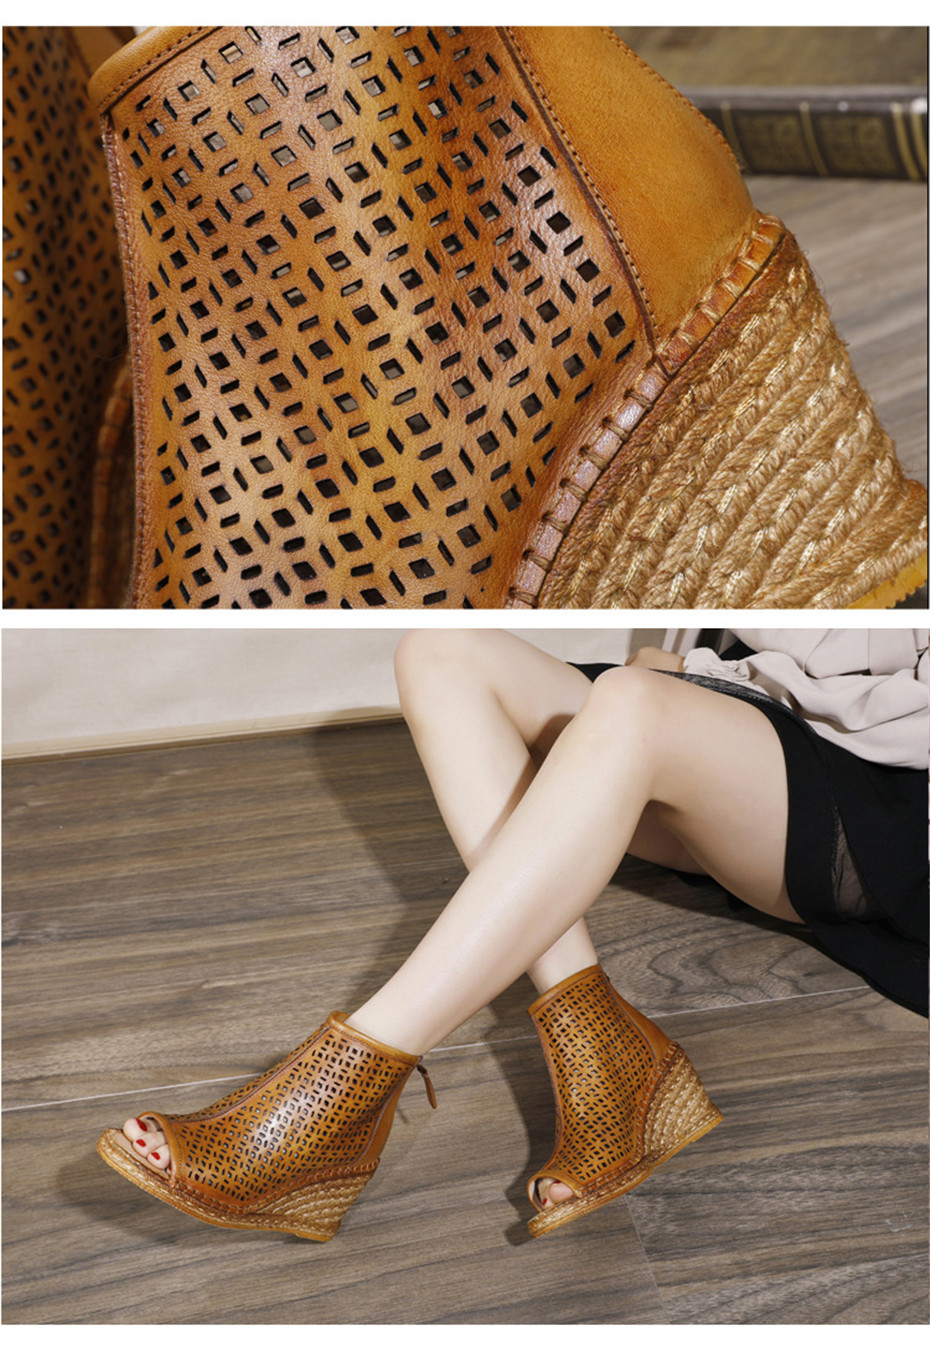 Spring Summer 2020 New Women Wedges Sandals Genuine Leather Peep Toe Hollow Woven High Wedge Heels Shoes Woman High-Top Sandals (17)